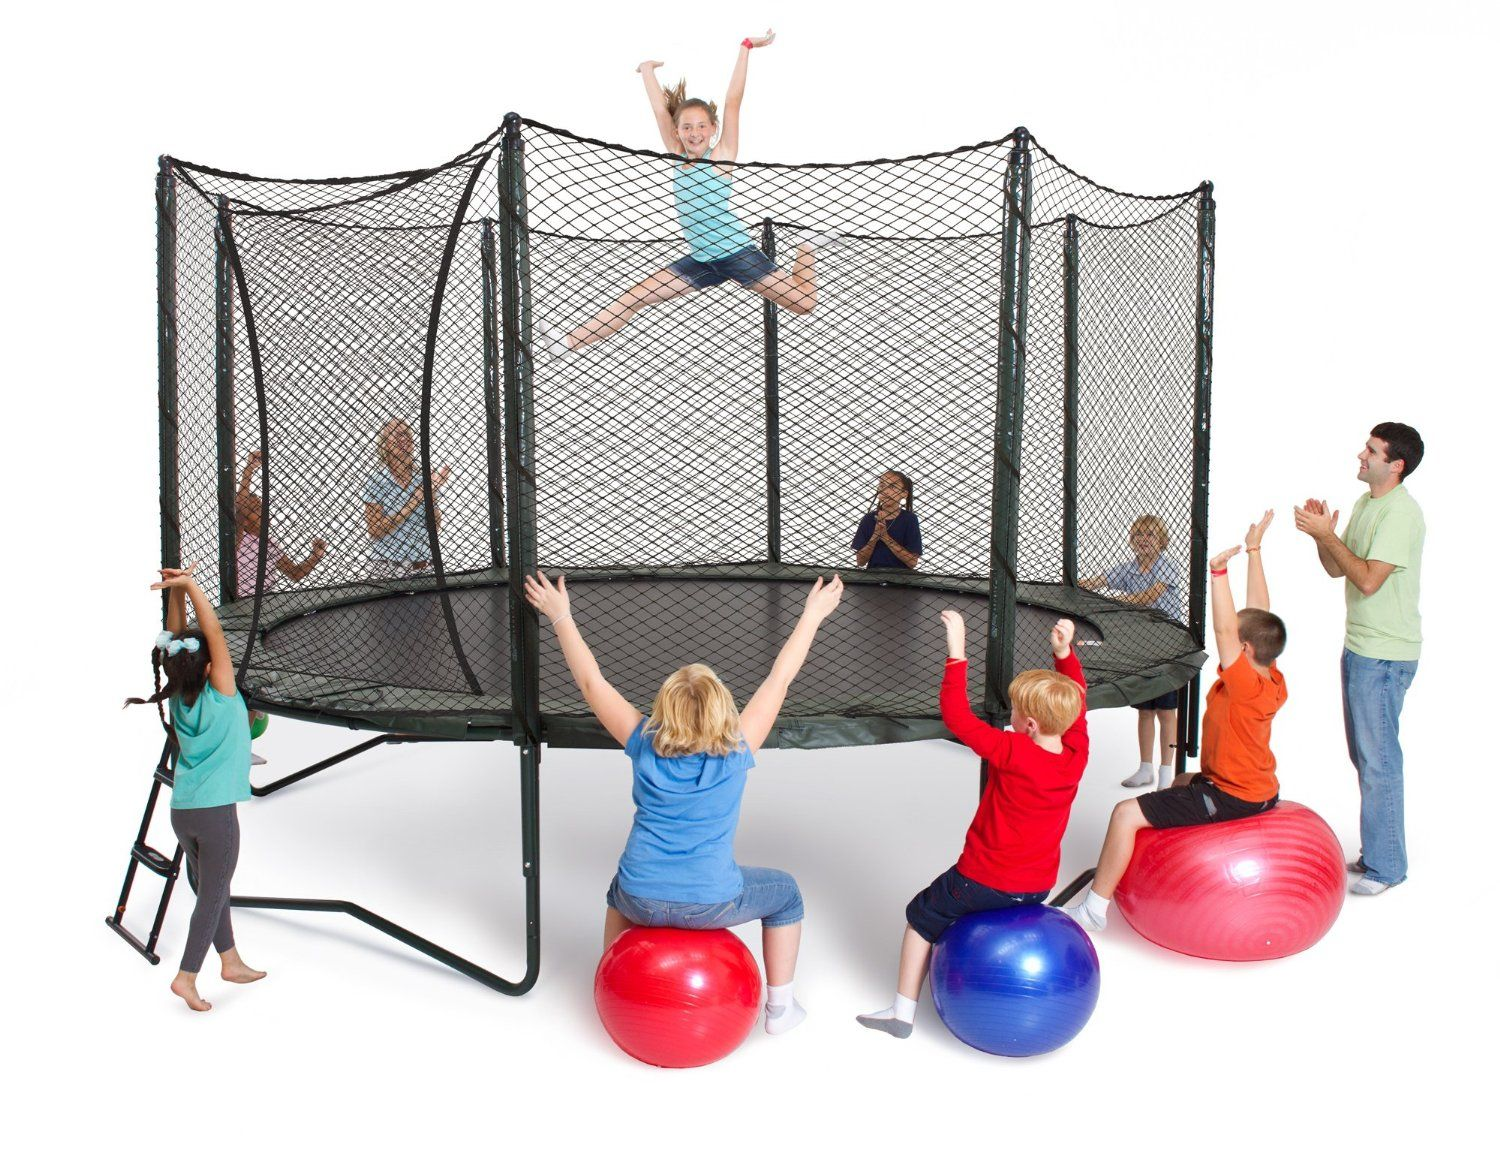 Alleyoop 14 variablebounce trampoline with integrated